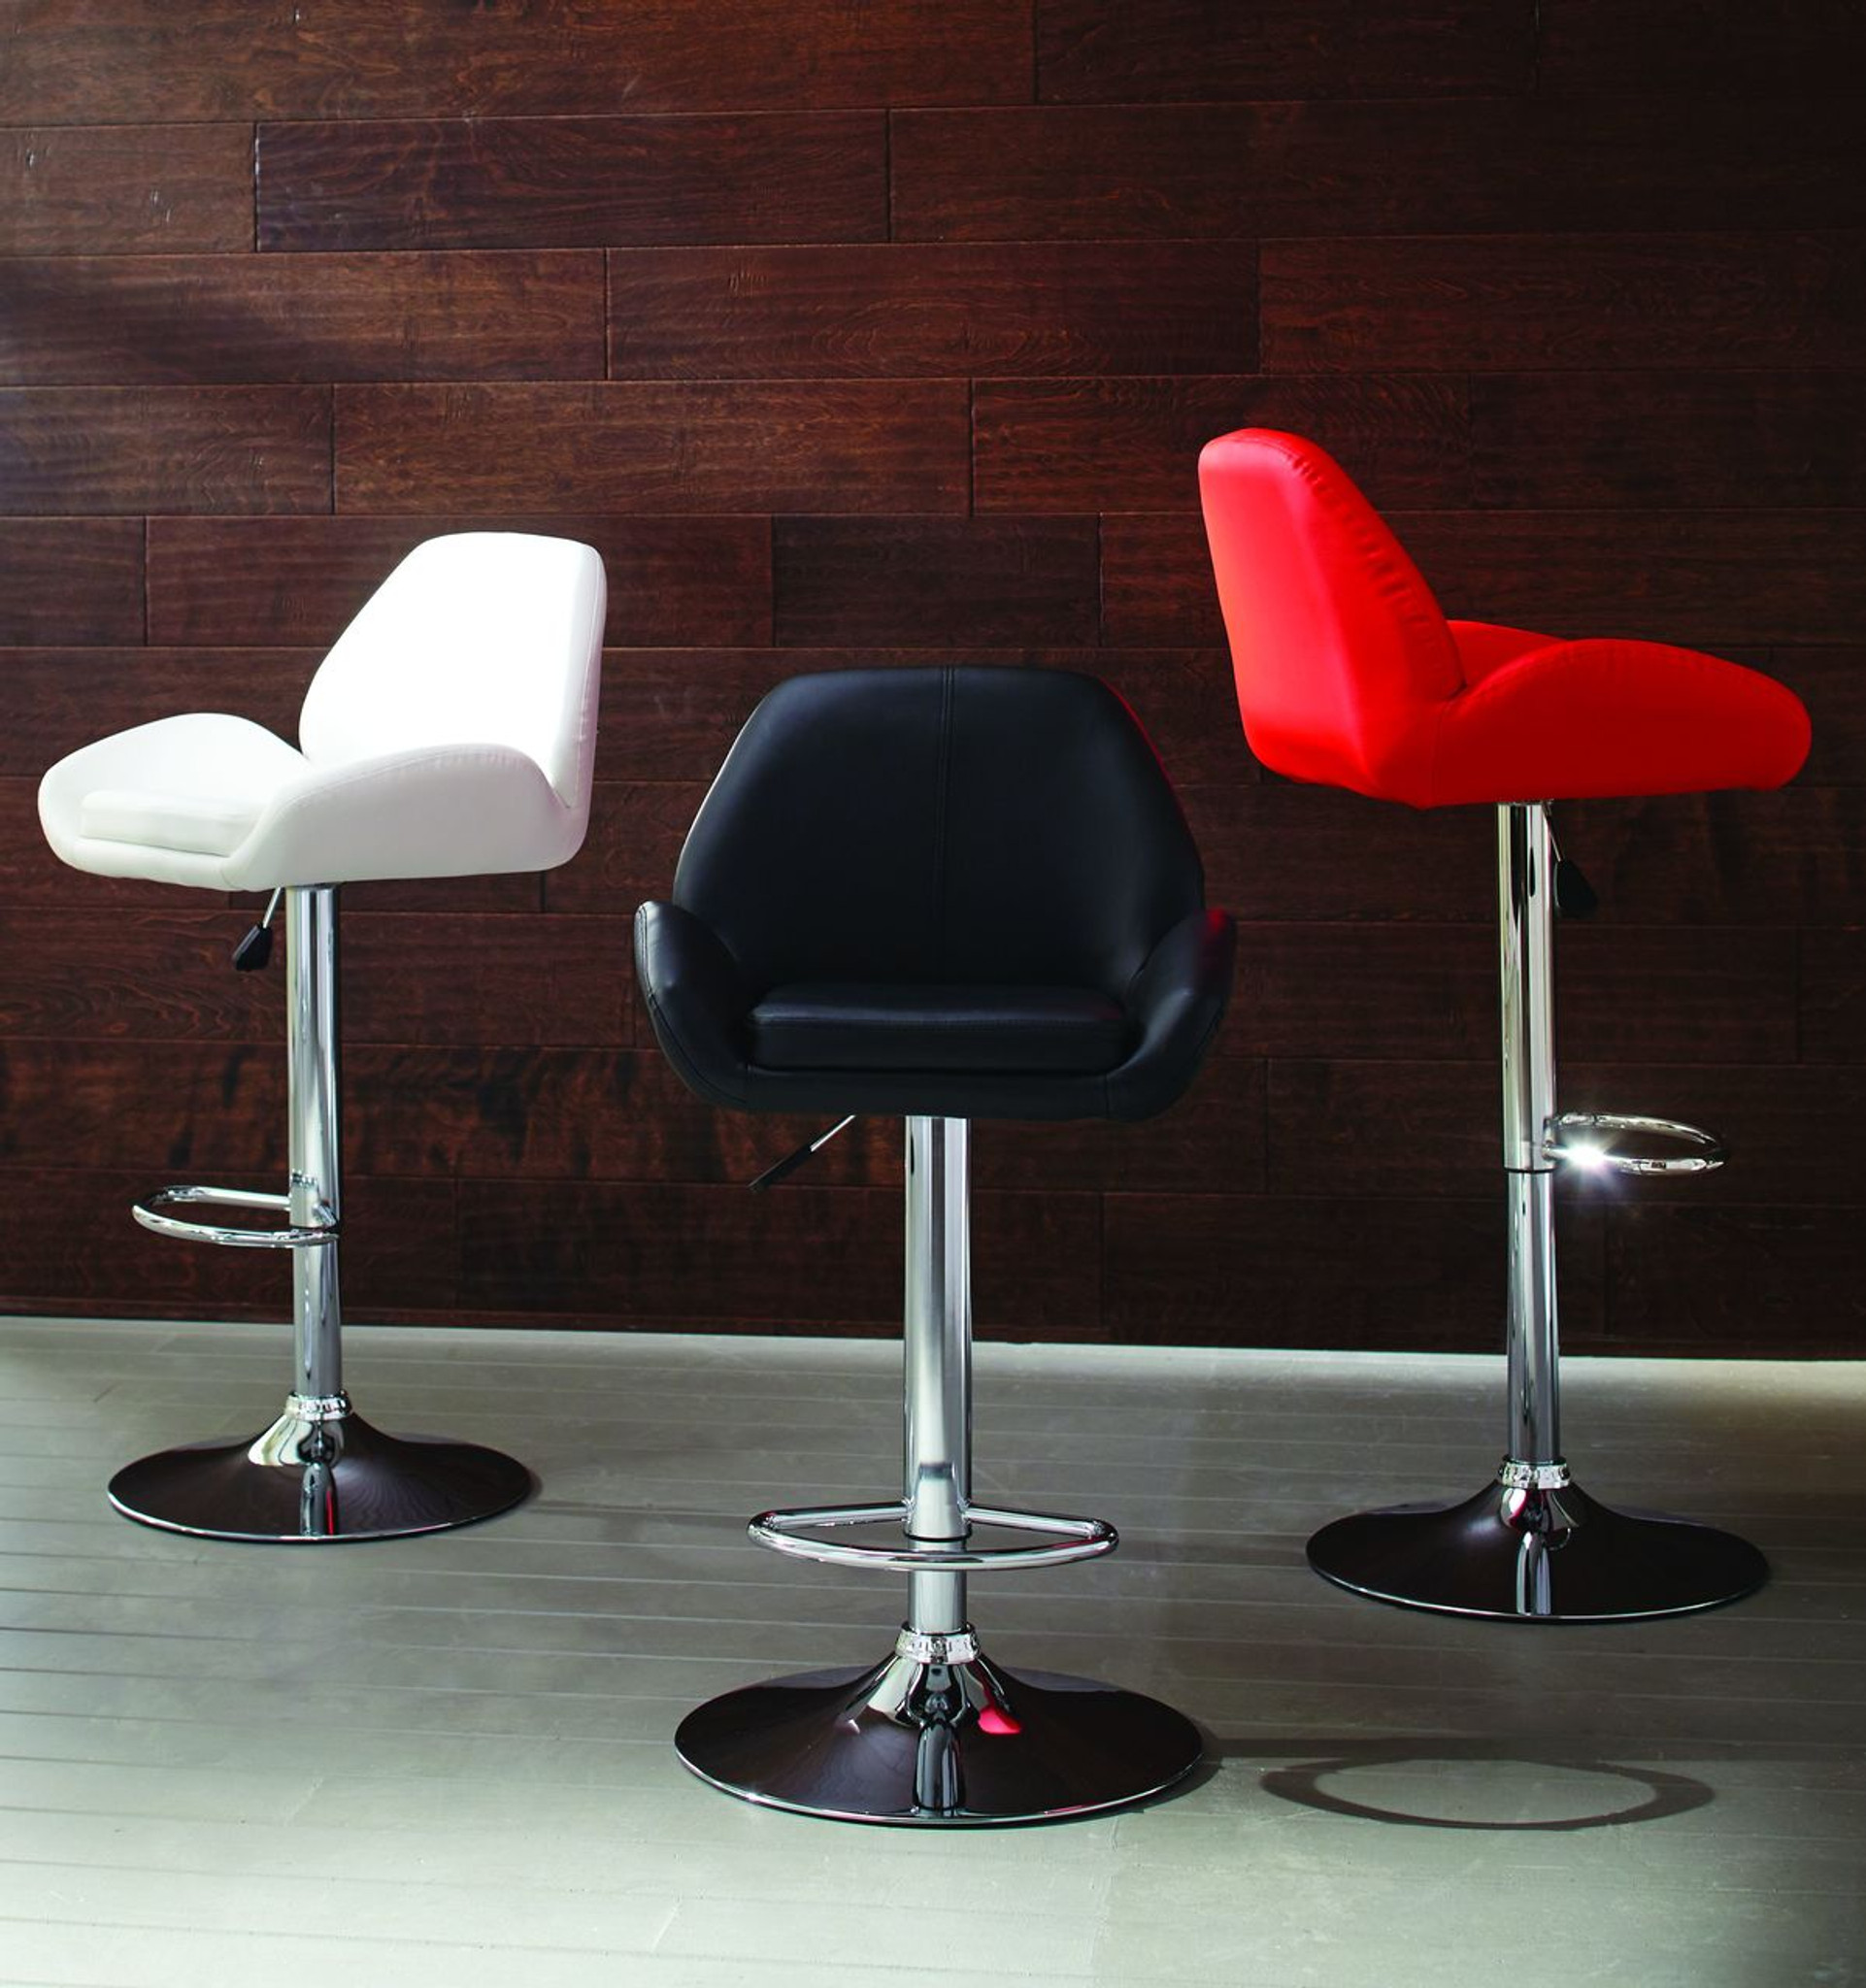 CHROME ADJ BAR STOOL - (assorted colors)